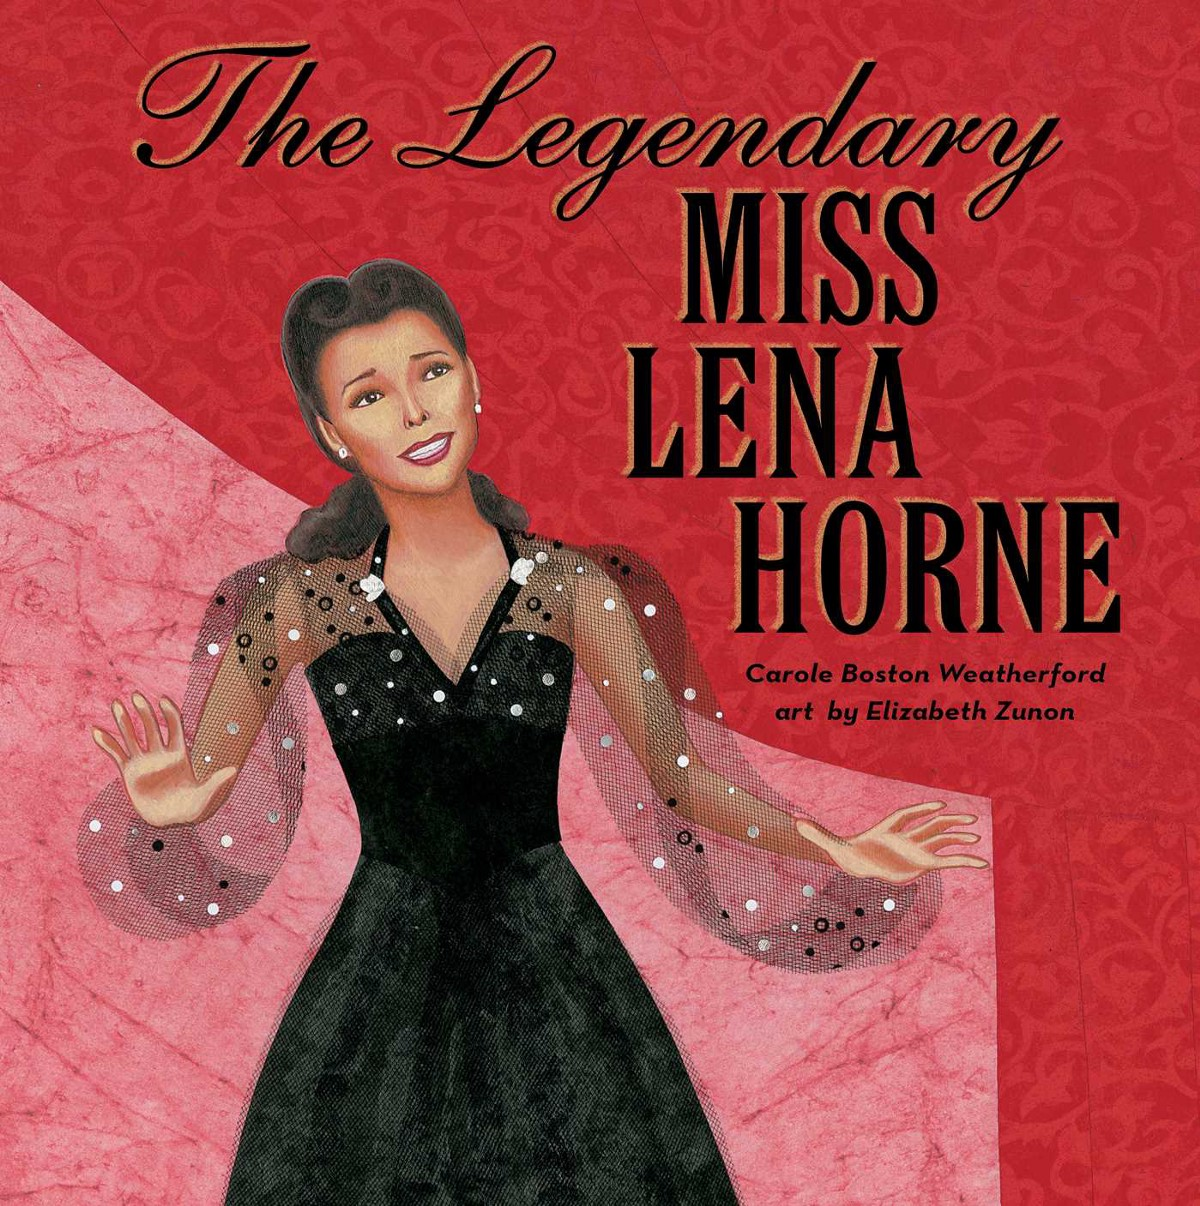 34bc23d268 The Legendary Miss Lena Horne by Carole Boston Weatherford